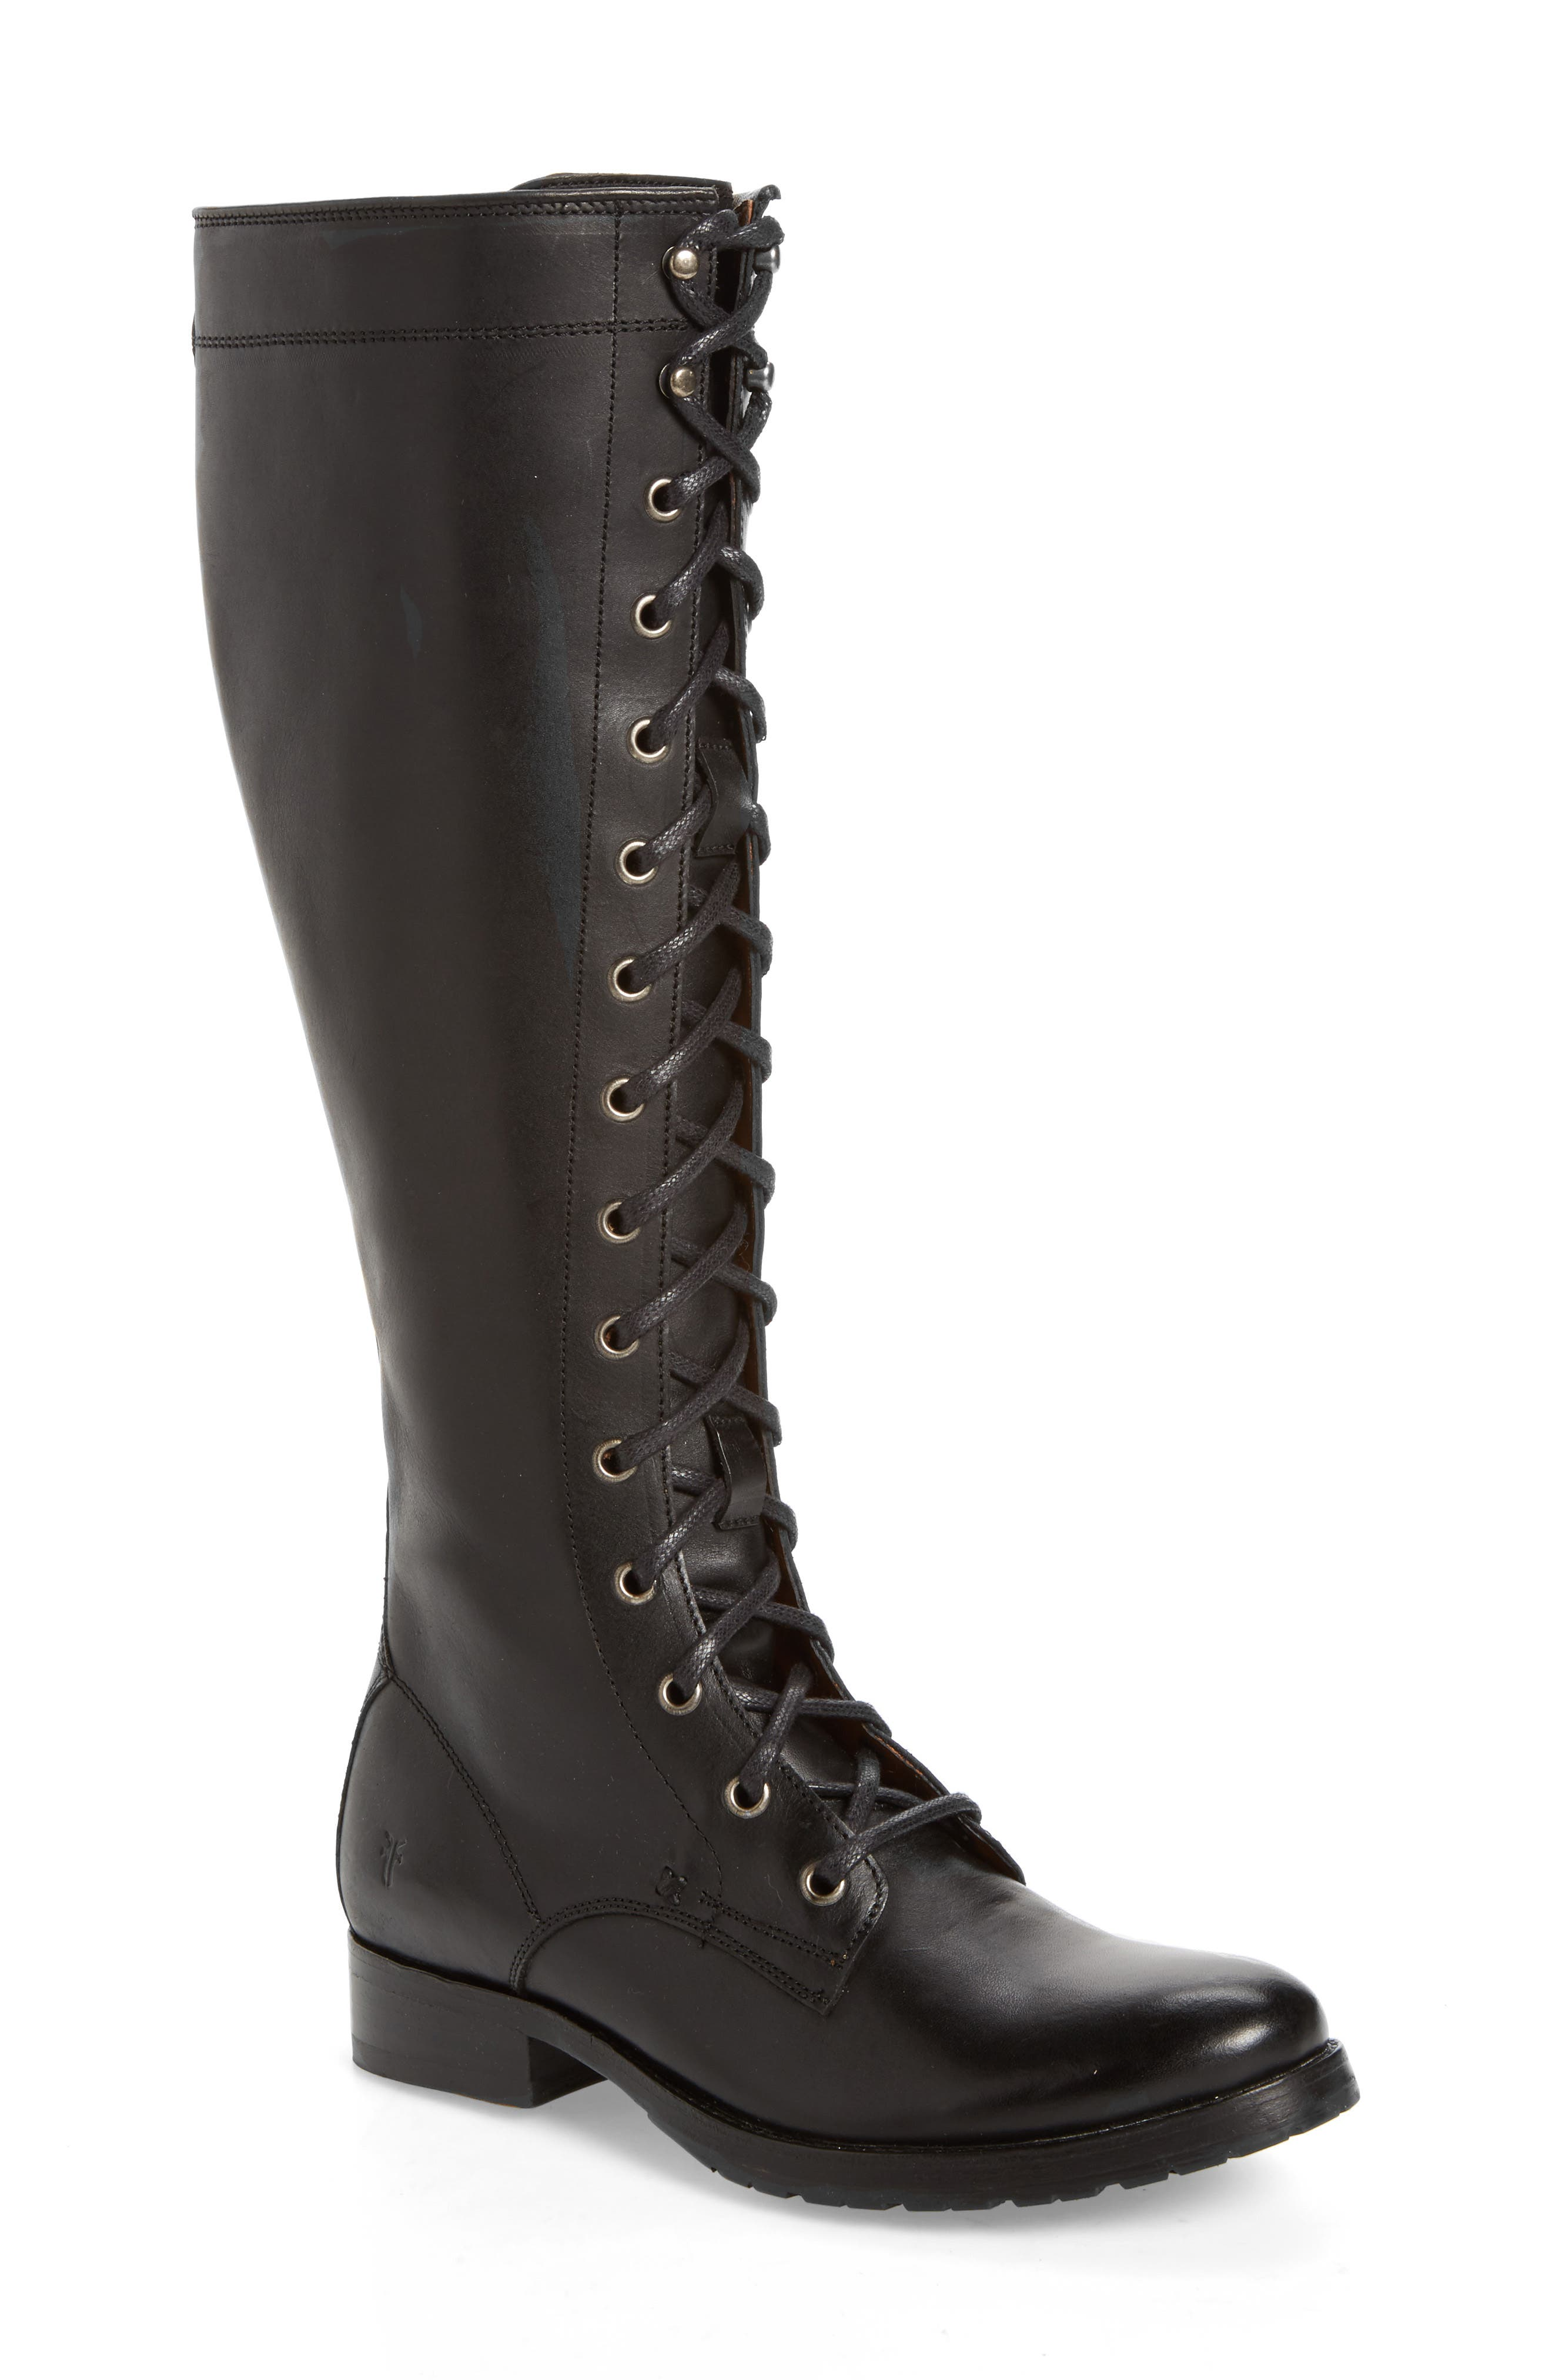 Alternate Image 1 Selected - Frye Melissa Tall Lace-Up Boot (Women)